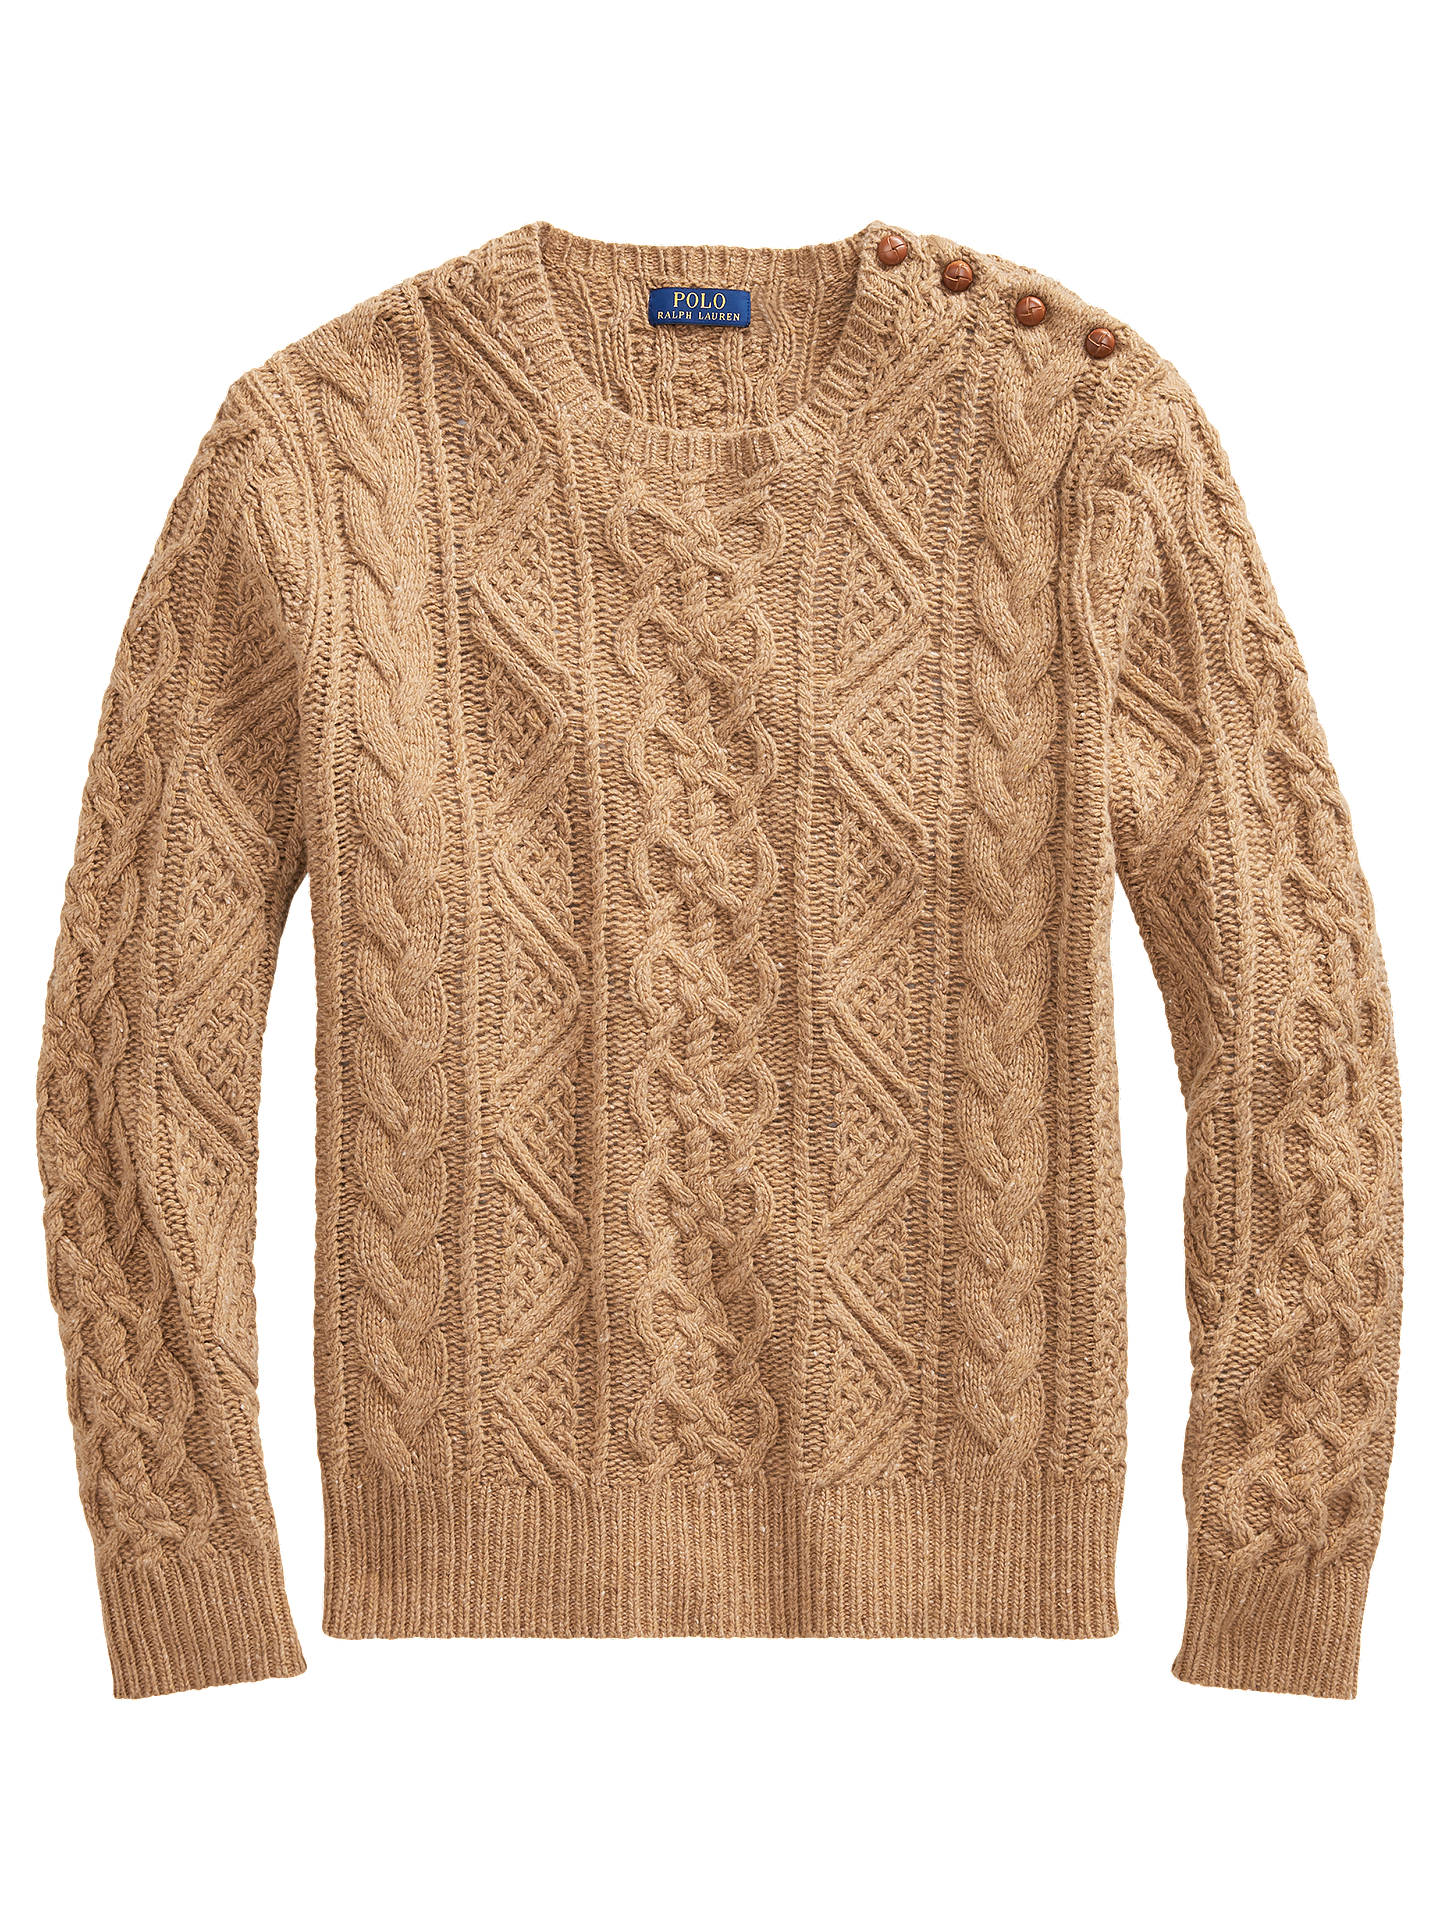 BuyPolo Ralph Lauren Button Cable Knit Jumper, Camel Donegal, XL Online at johnlewis.com